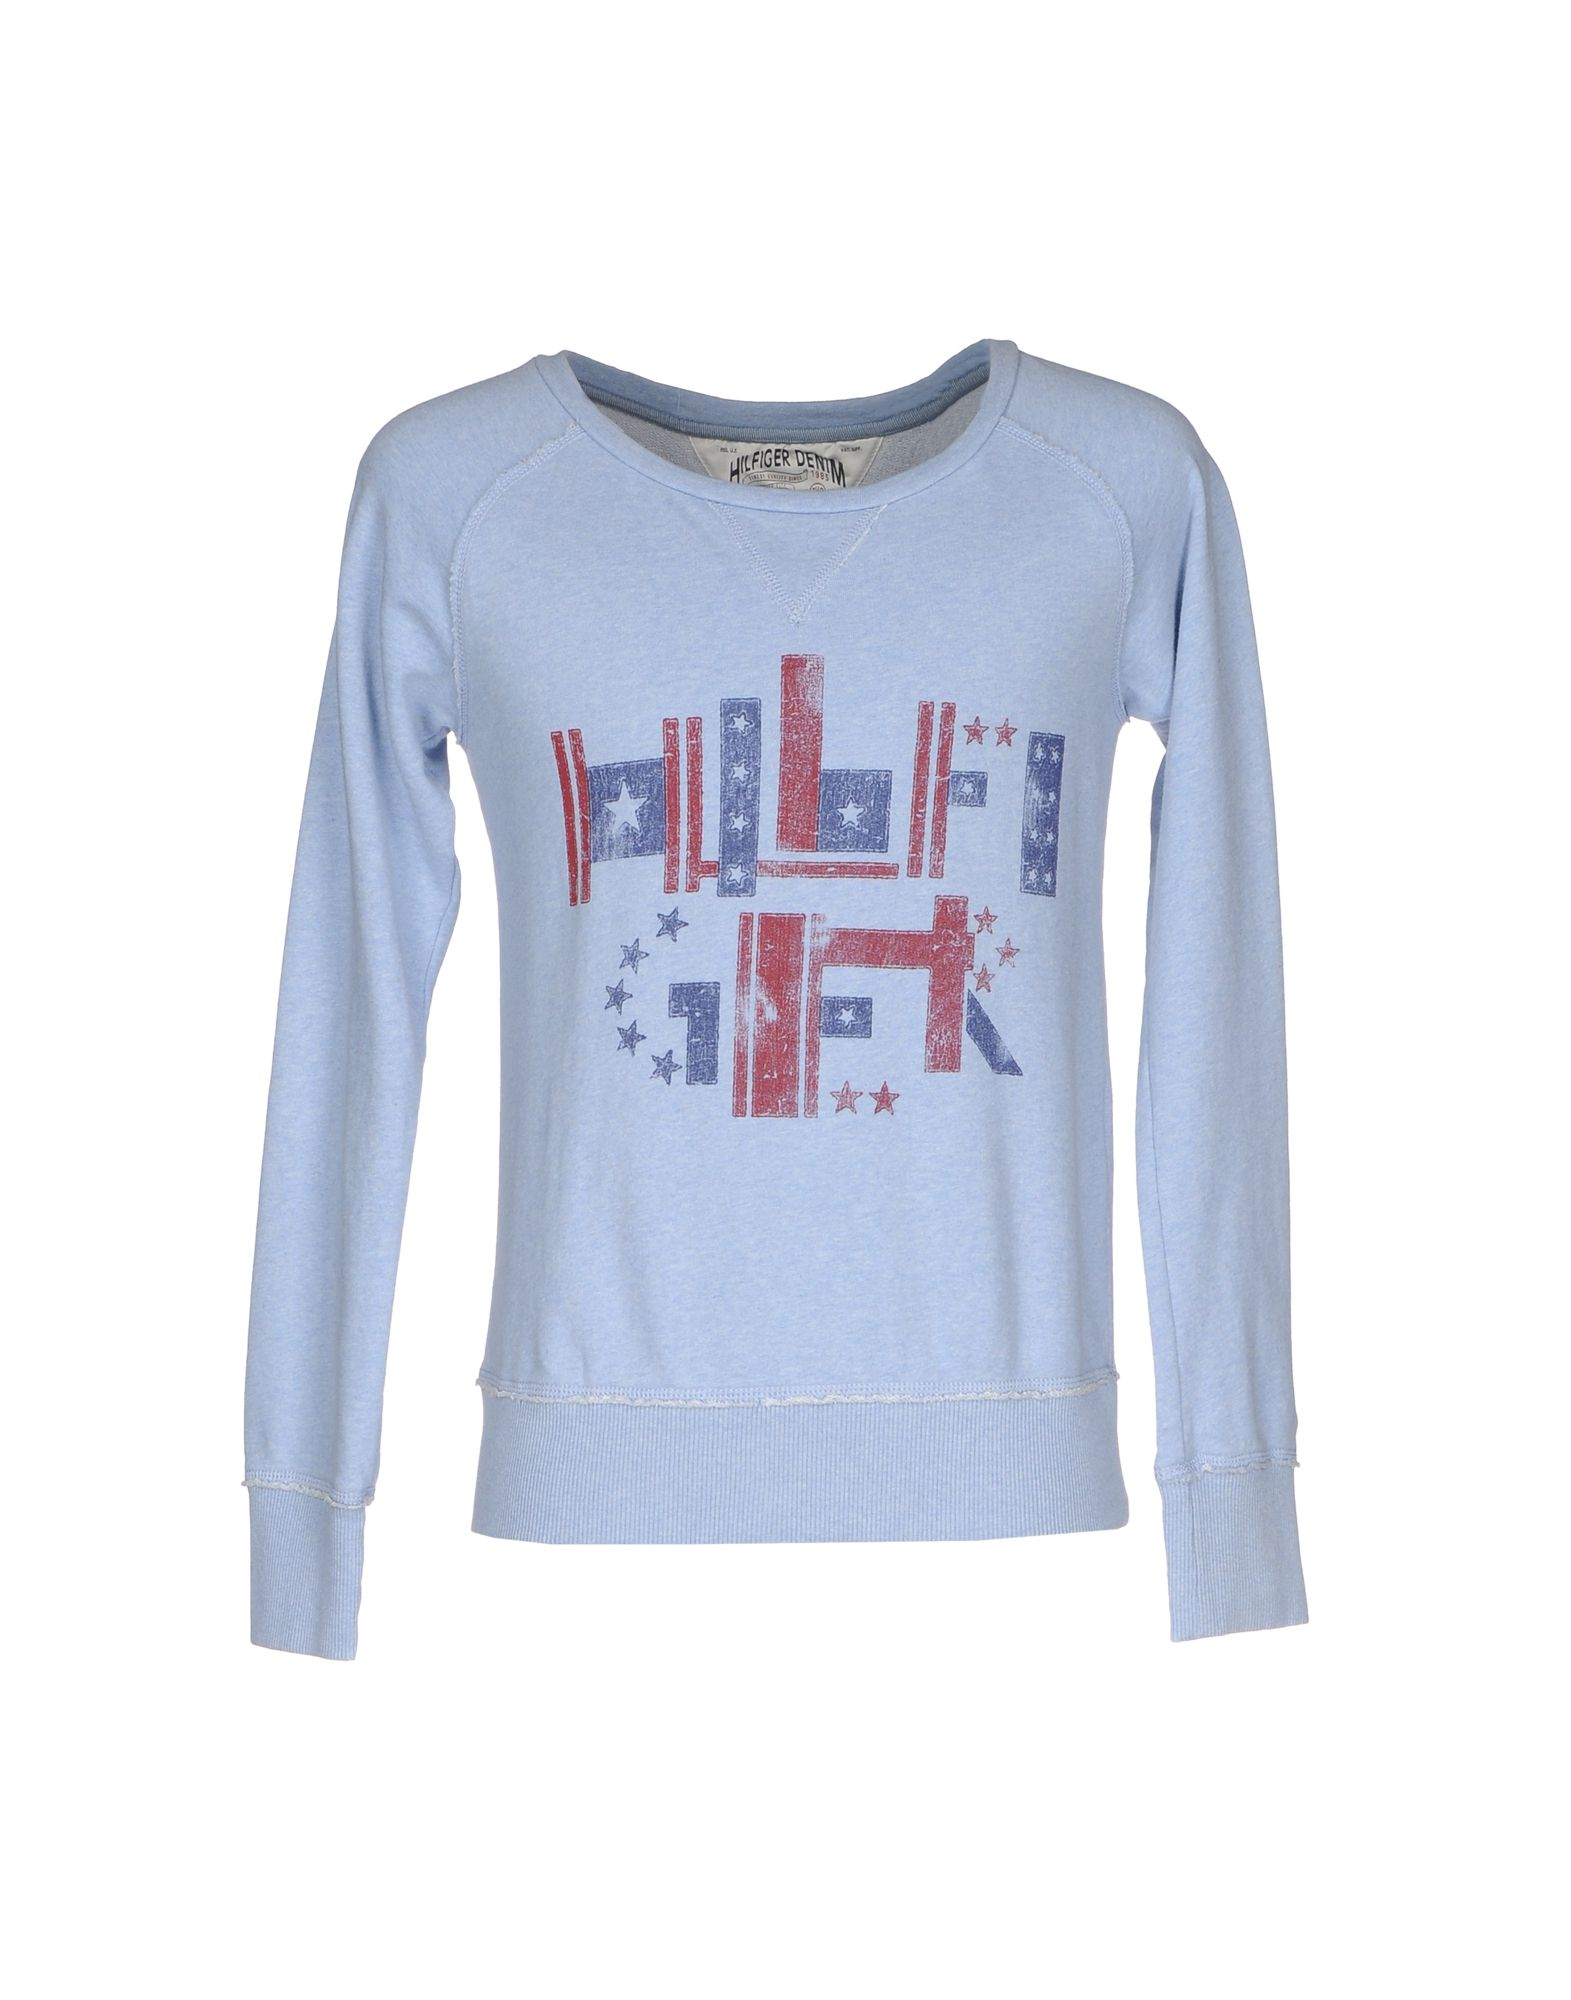 TOMMY HILFIGER DENIM Толстовка футболка tommy hilfiger denim tommy hilfiger denim to013ewtpb98